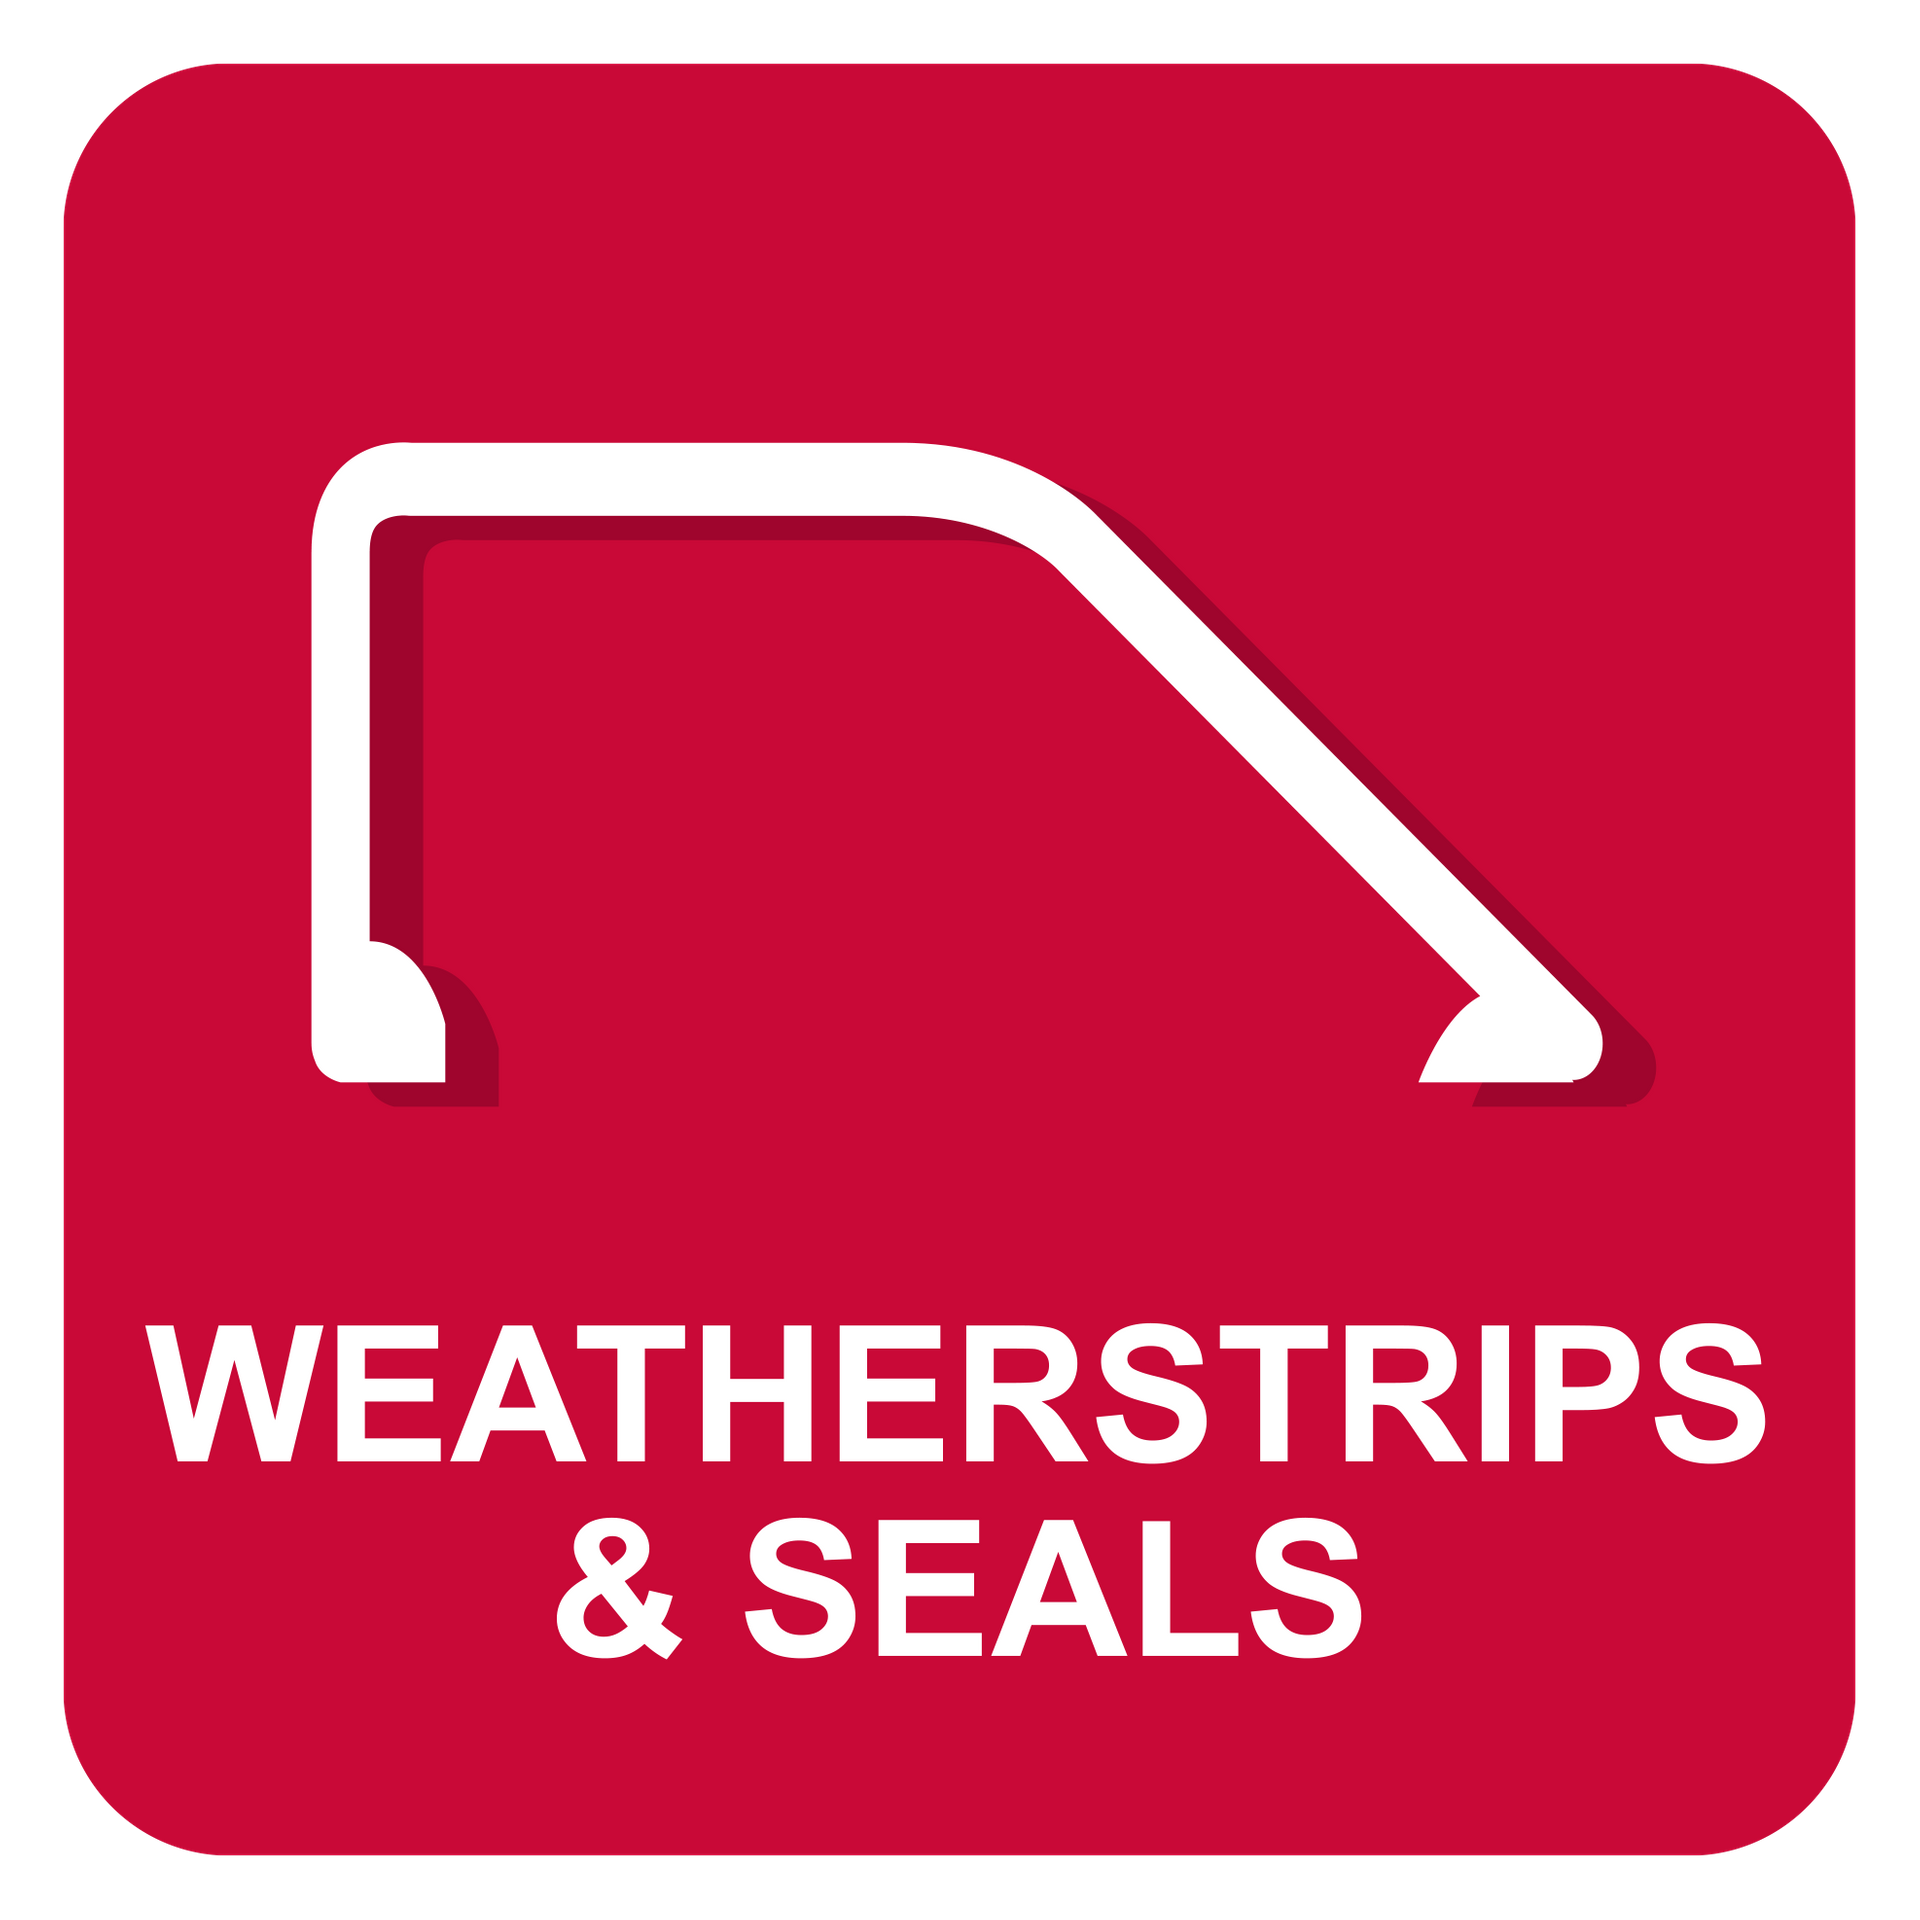 WEATHERSTRIPS & SEALS